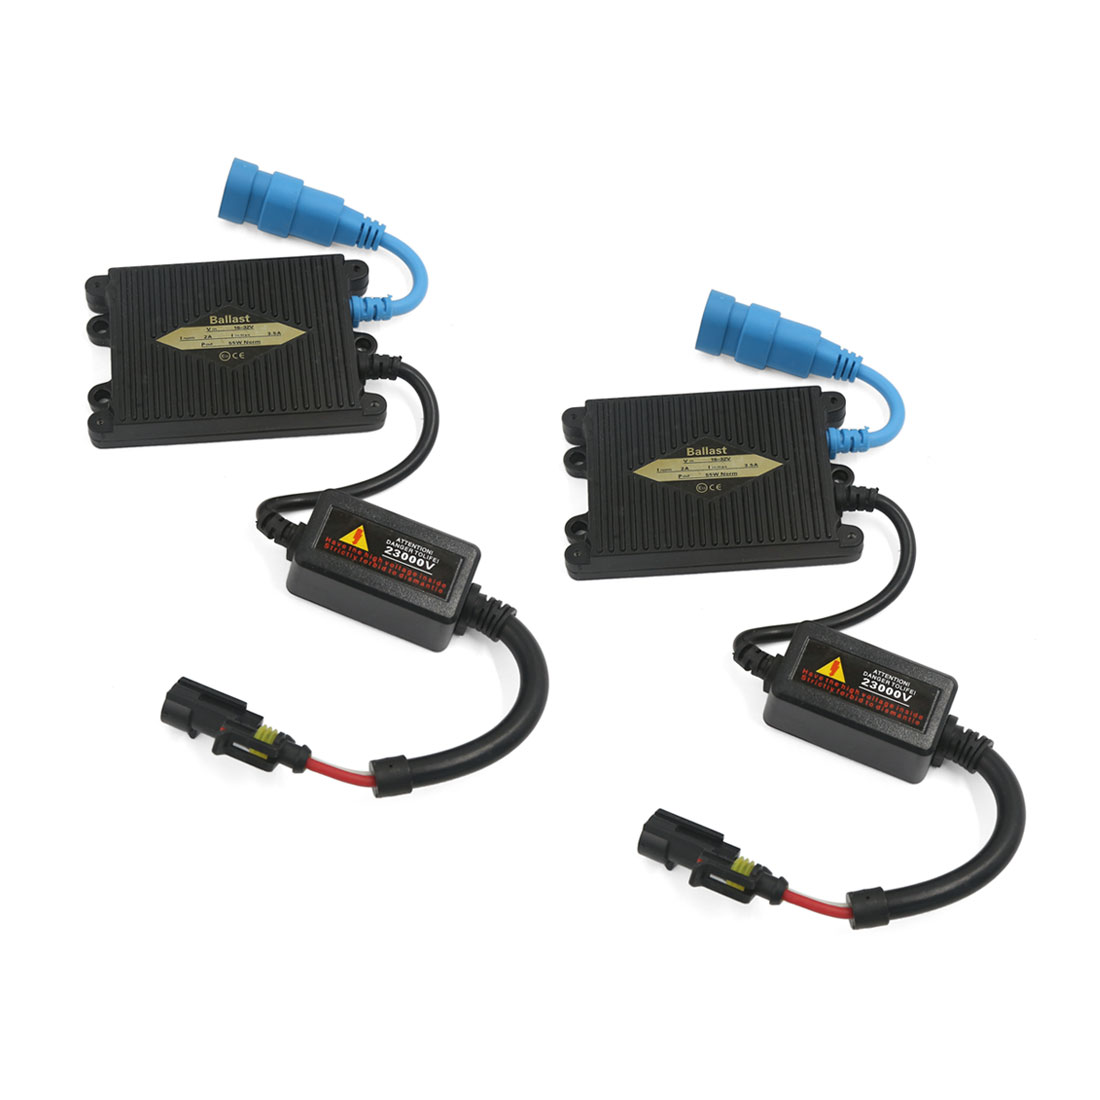 Universal AC 55W Ultra-Slim HID Replacement Ballast Xenon Conversion Kit 2 Pcs